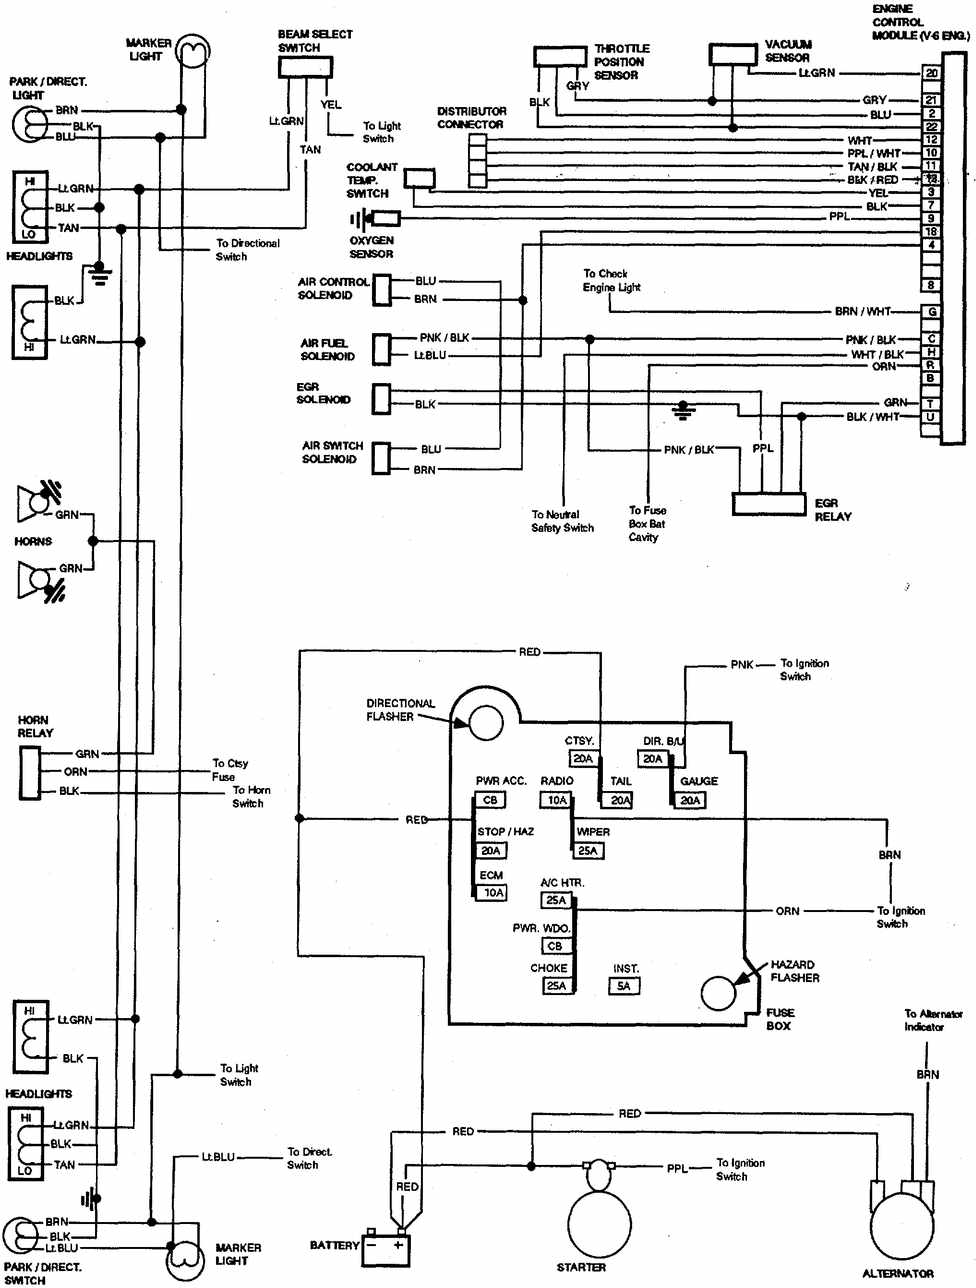 89 chevrolet corvette wiring diagram